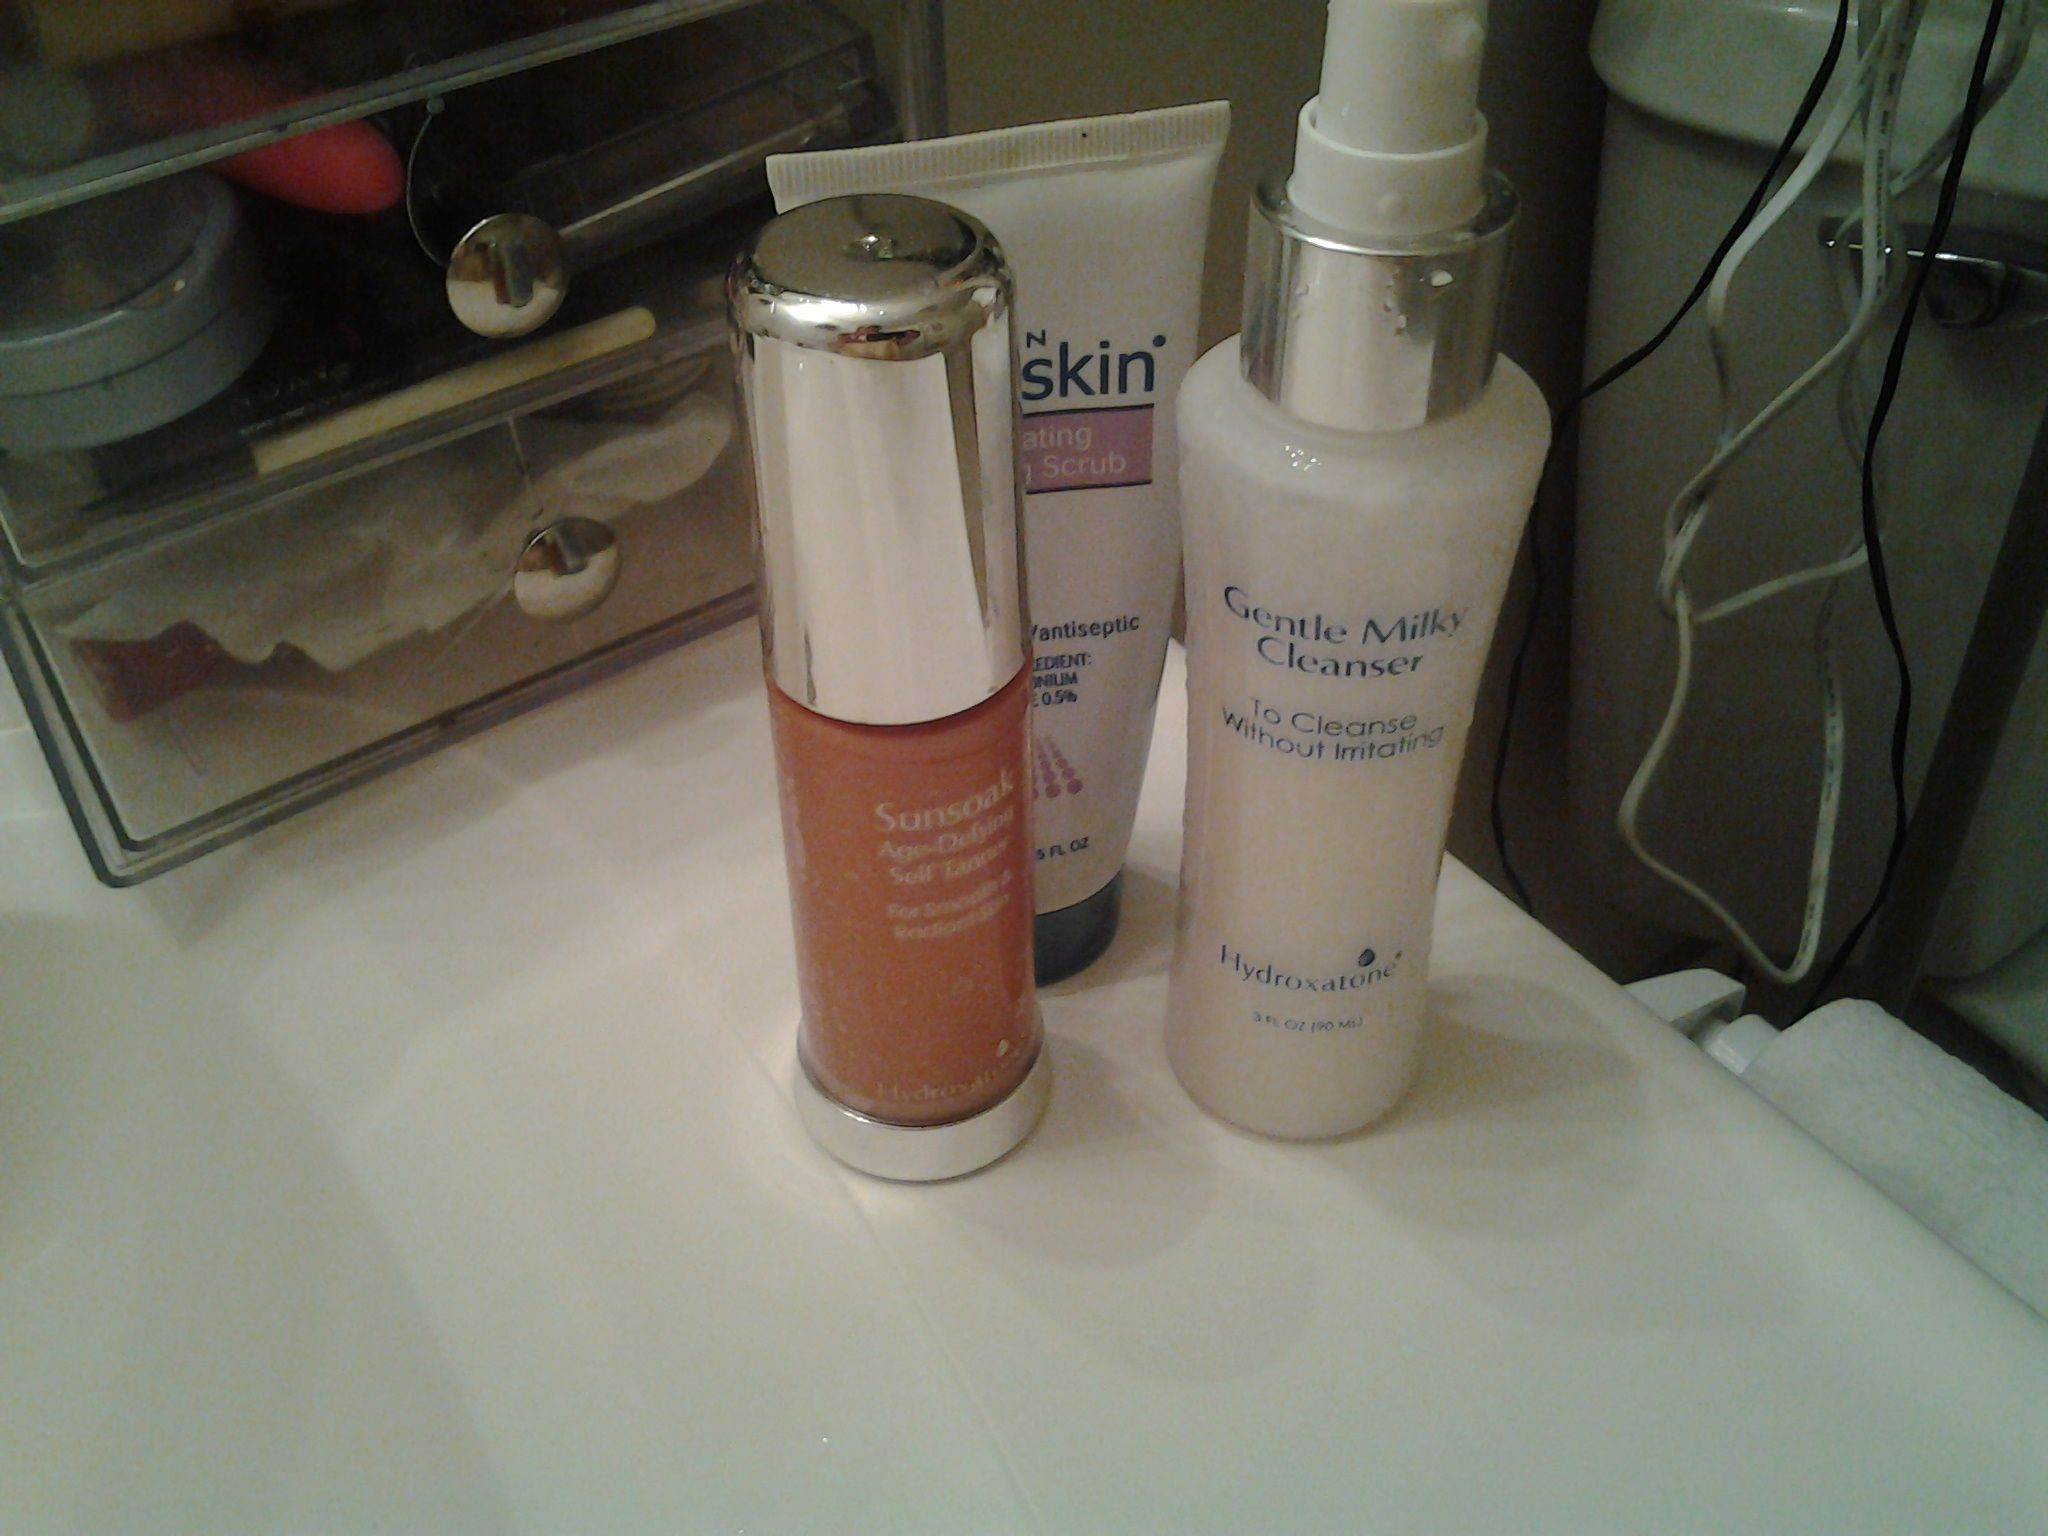 Embarrassing Beauty Disaster Solved: Acne! Skin care is so important to us women. Check out my latest review.